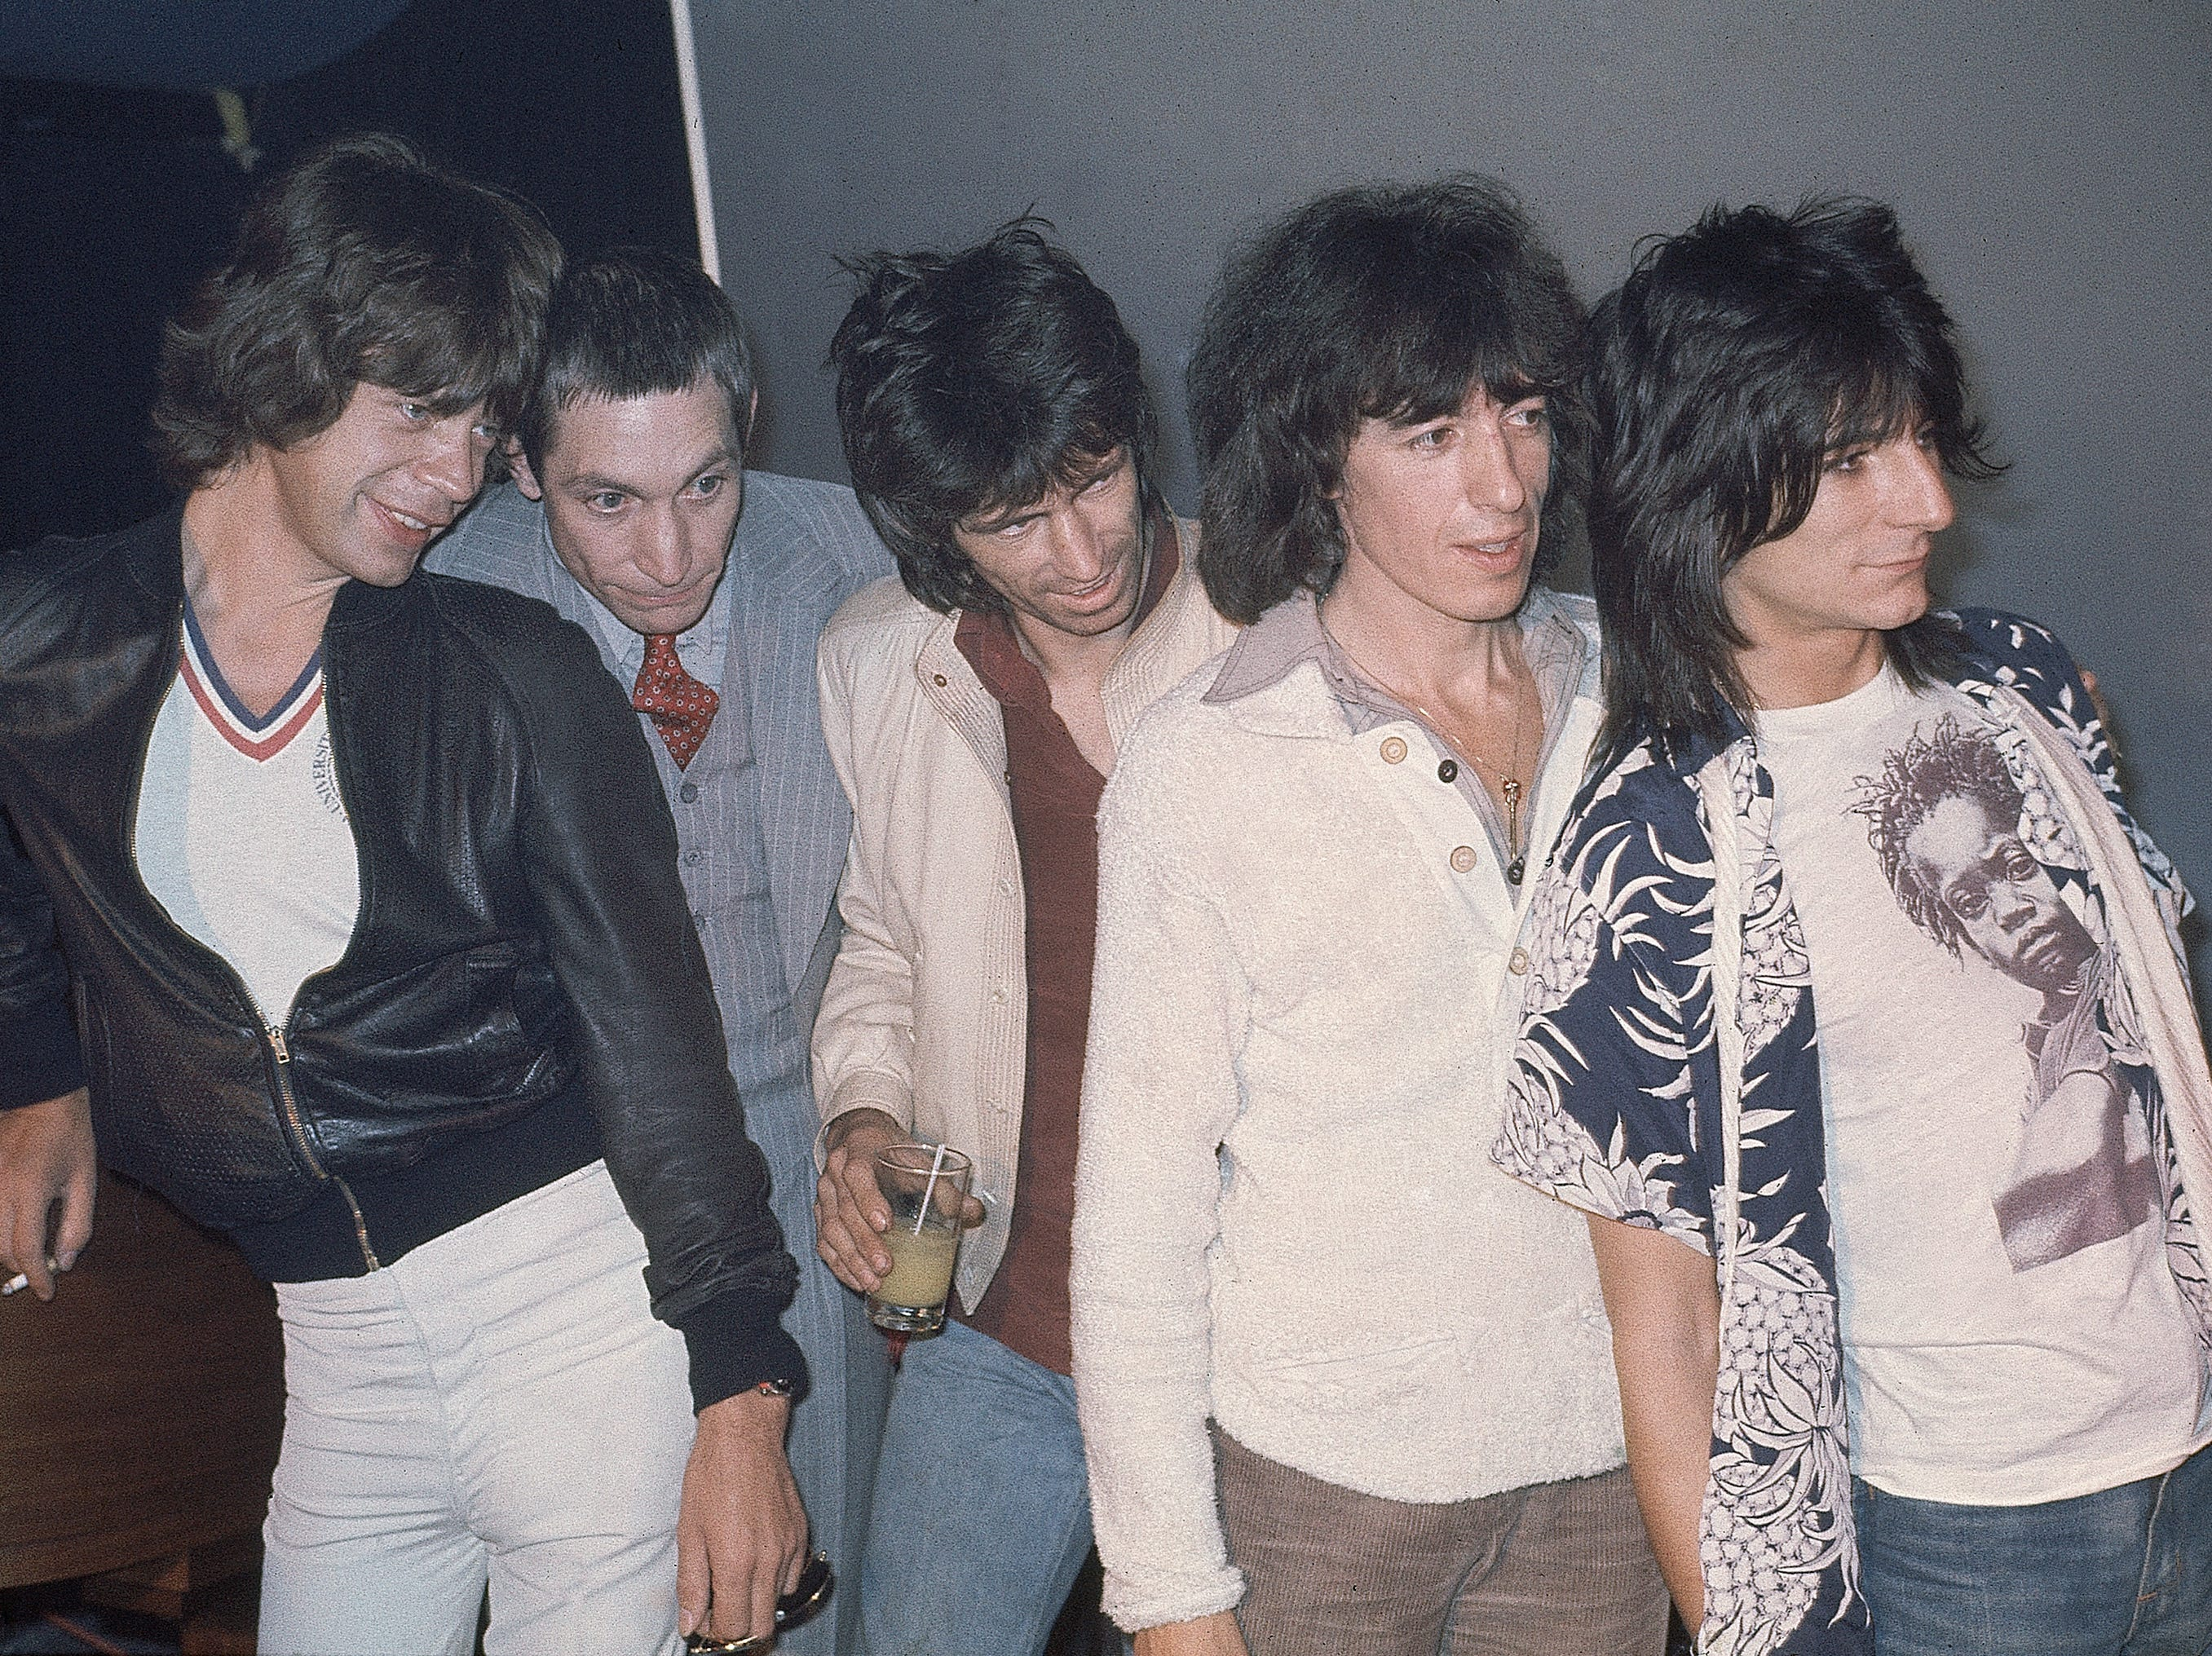 British pop group the Rolling Stones at Trax Club in New York City, N.Y., Sept. 23, 1977, to promote their new album. From left to right; Mick Jagger, Charlie Watts, Keith Richards, Bill Wyman and Ron Wood. (AP Photo)